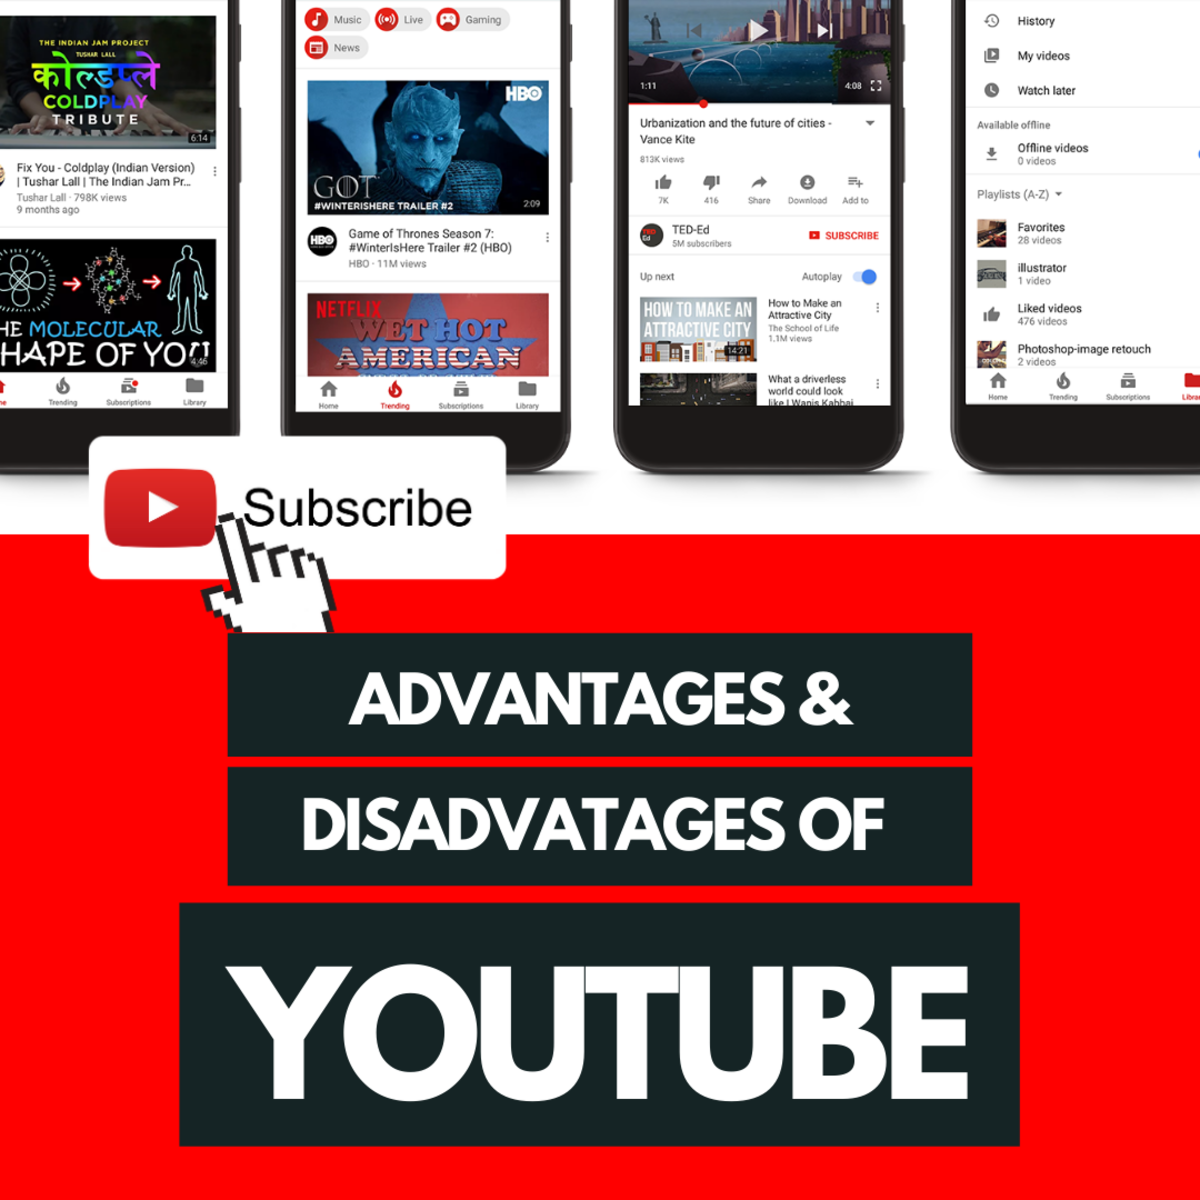 The Advantages and Disadvantages of YouTube